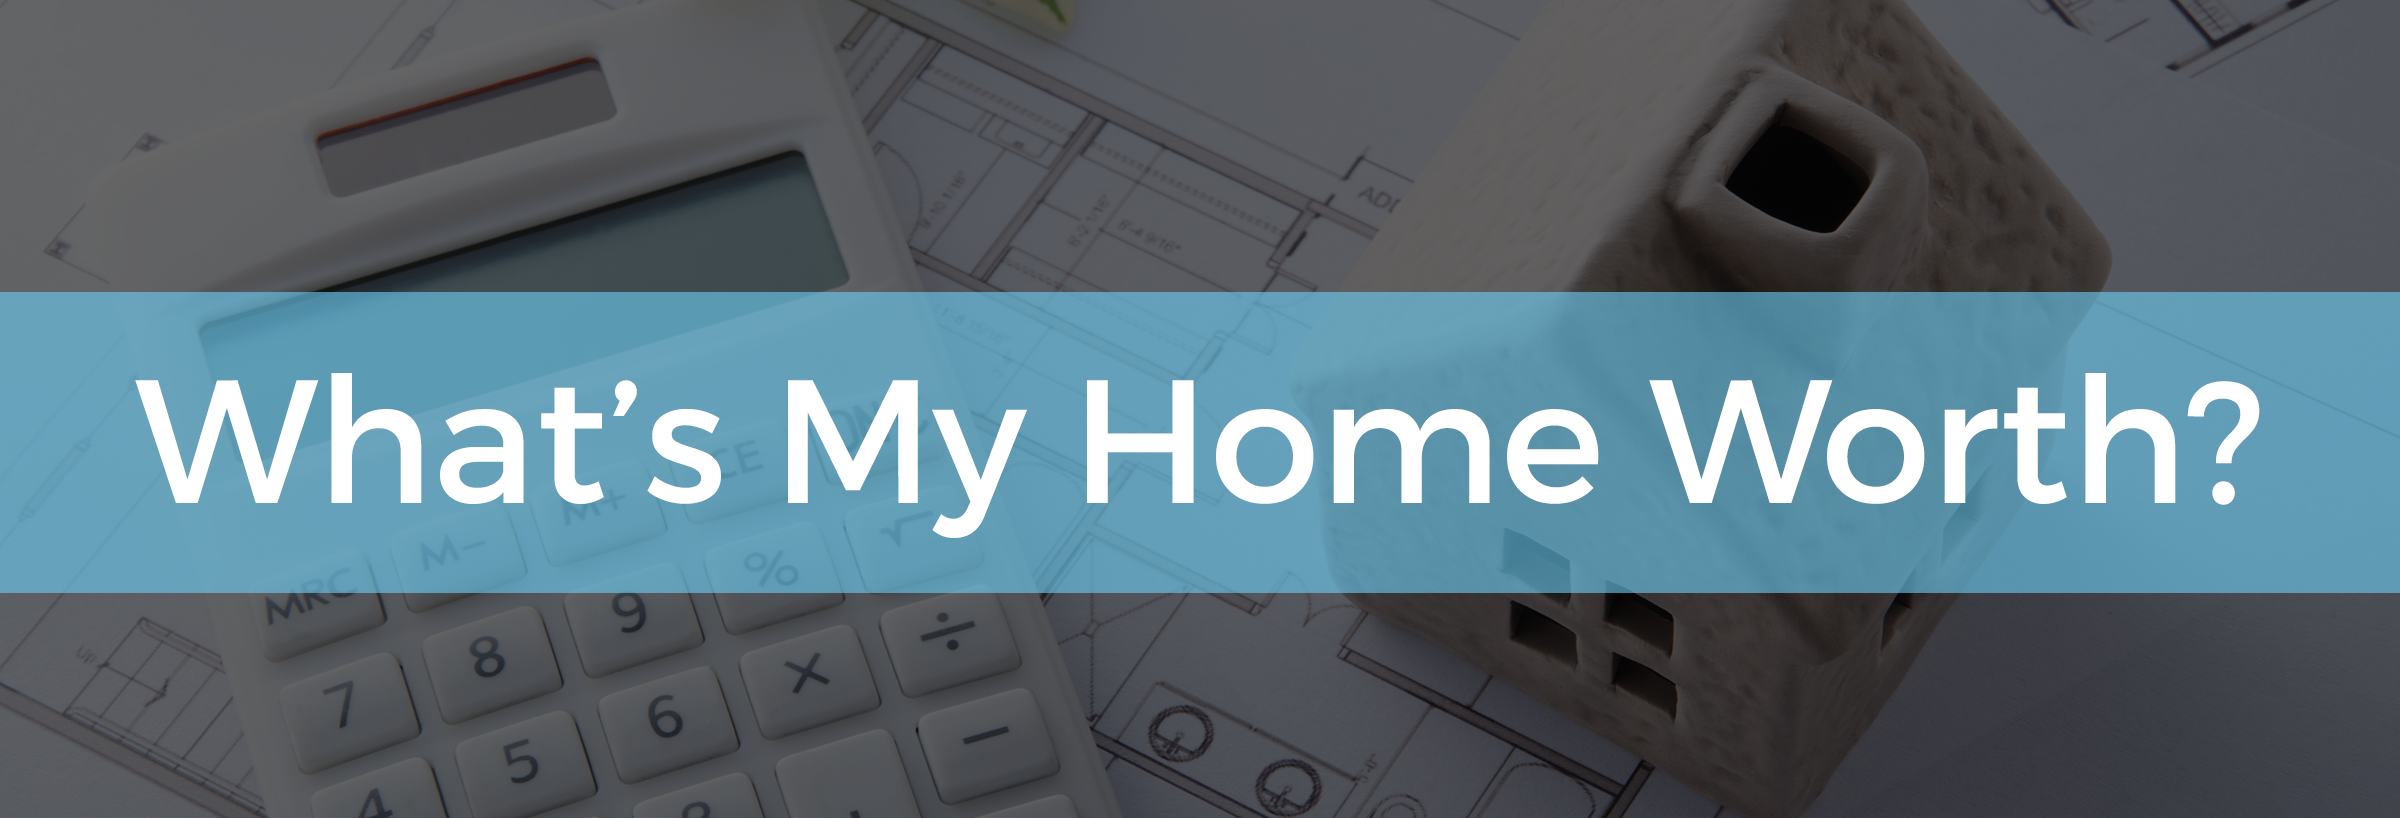 What's My Home Worth - Baner.png